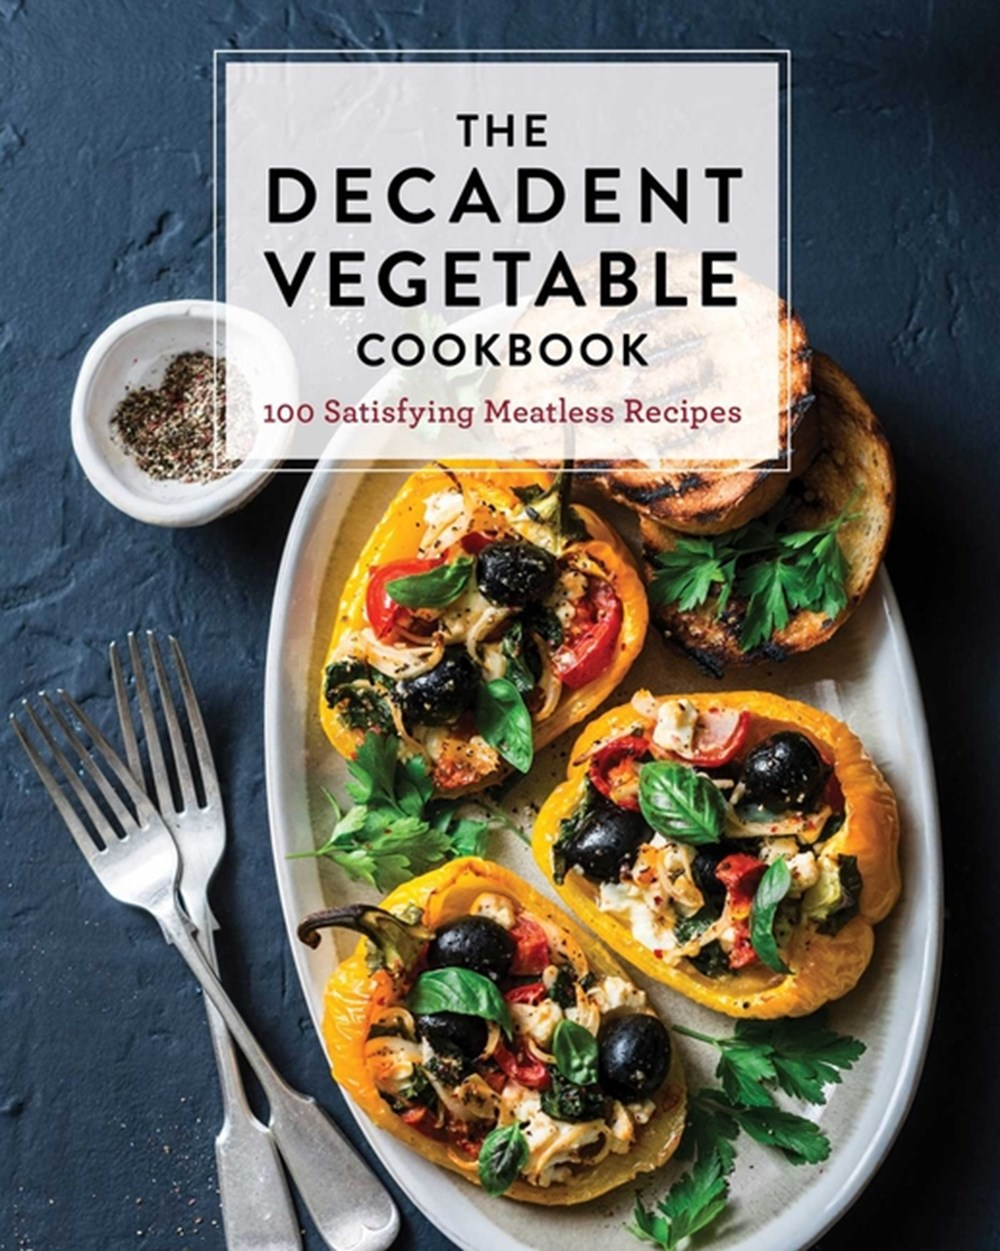 Decadent Vegetable Cookbook Over 100 Satisfying Meatless Recipes